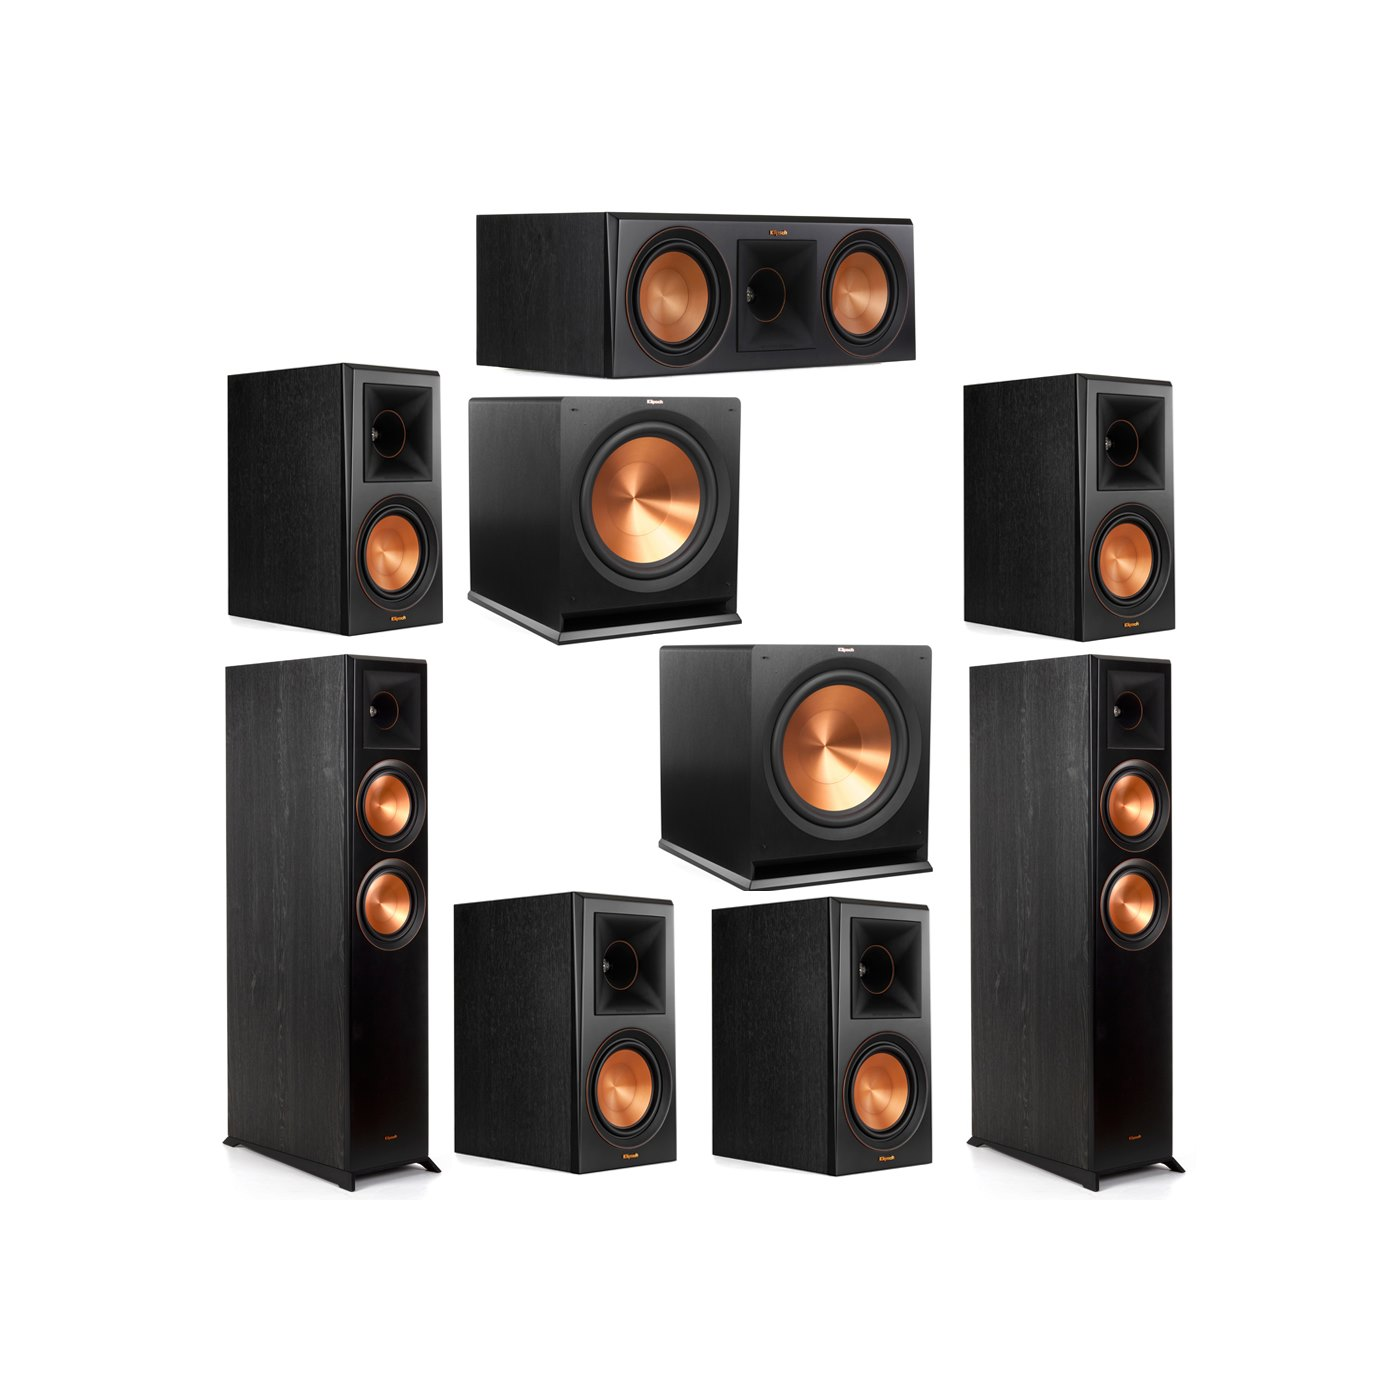 Klipsch 7.2 System with 2 RP-6000F Floorstanding Speakers, 1 Klipsch RP-600C Center Speaker, 4 Klipsch RP-600M Surround Speakers, 2 Klipsch R-115SW Subwoofers